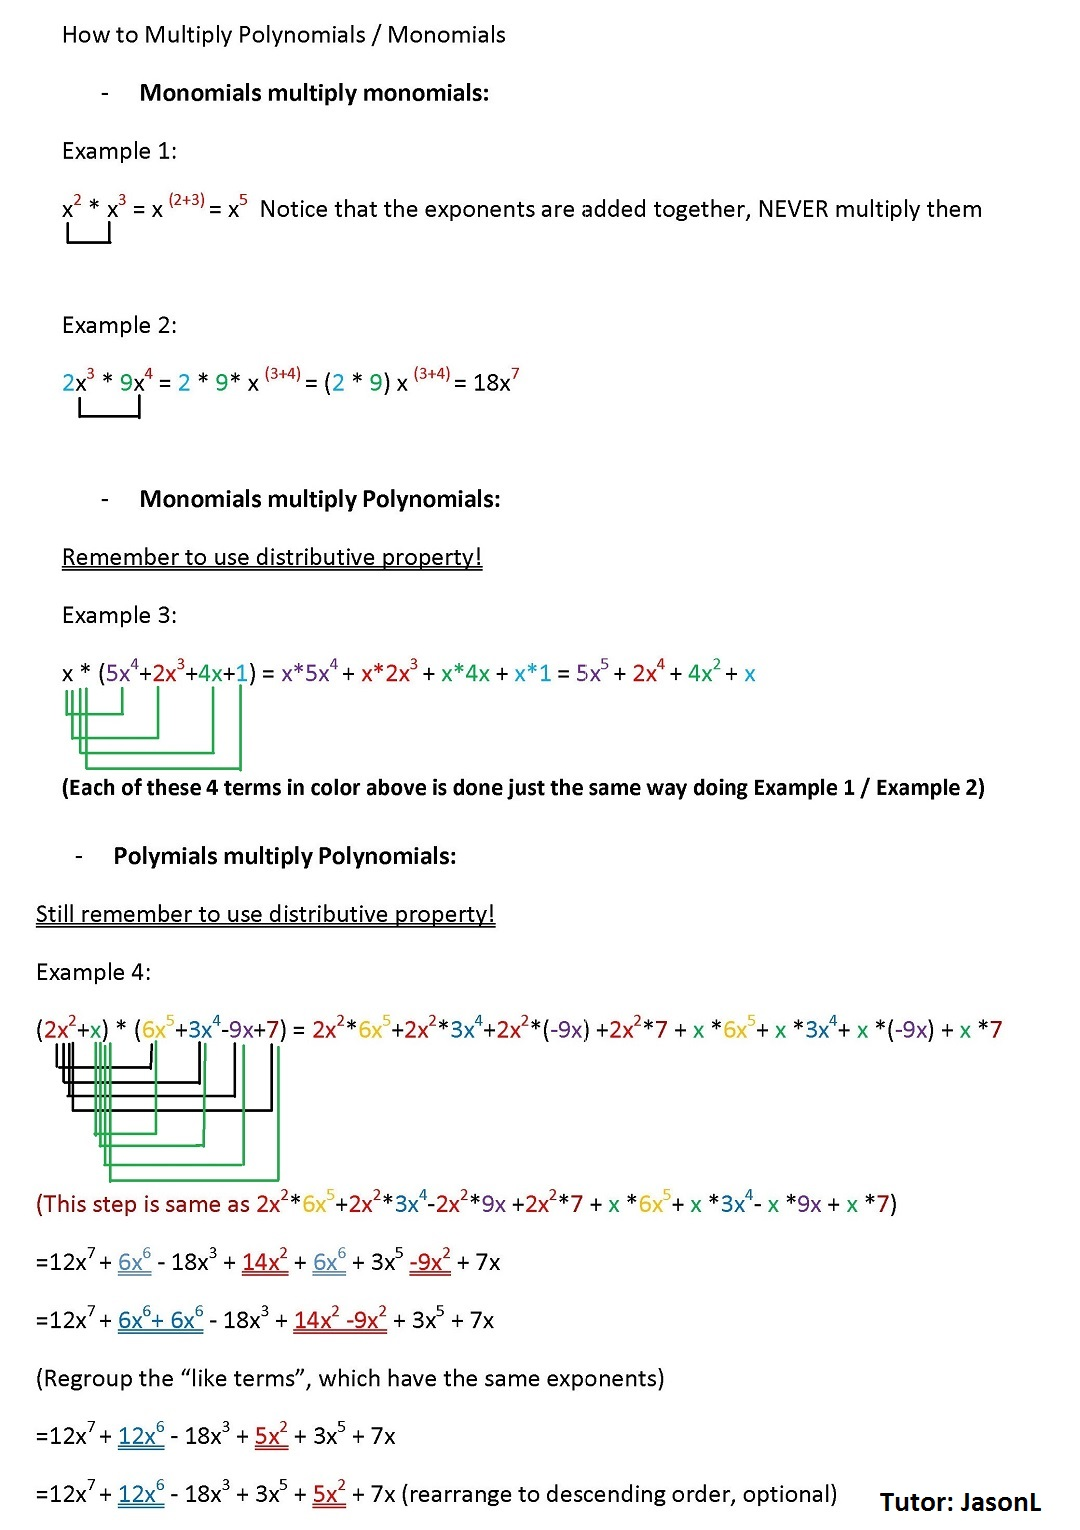 How To Multiply Polynomials Monomials